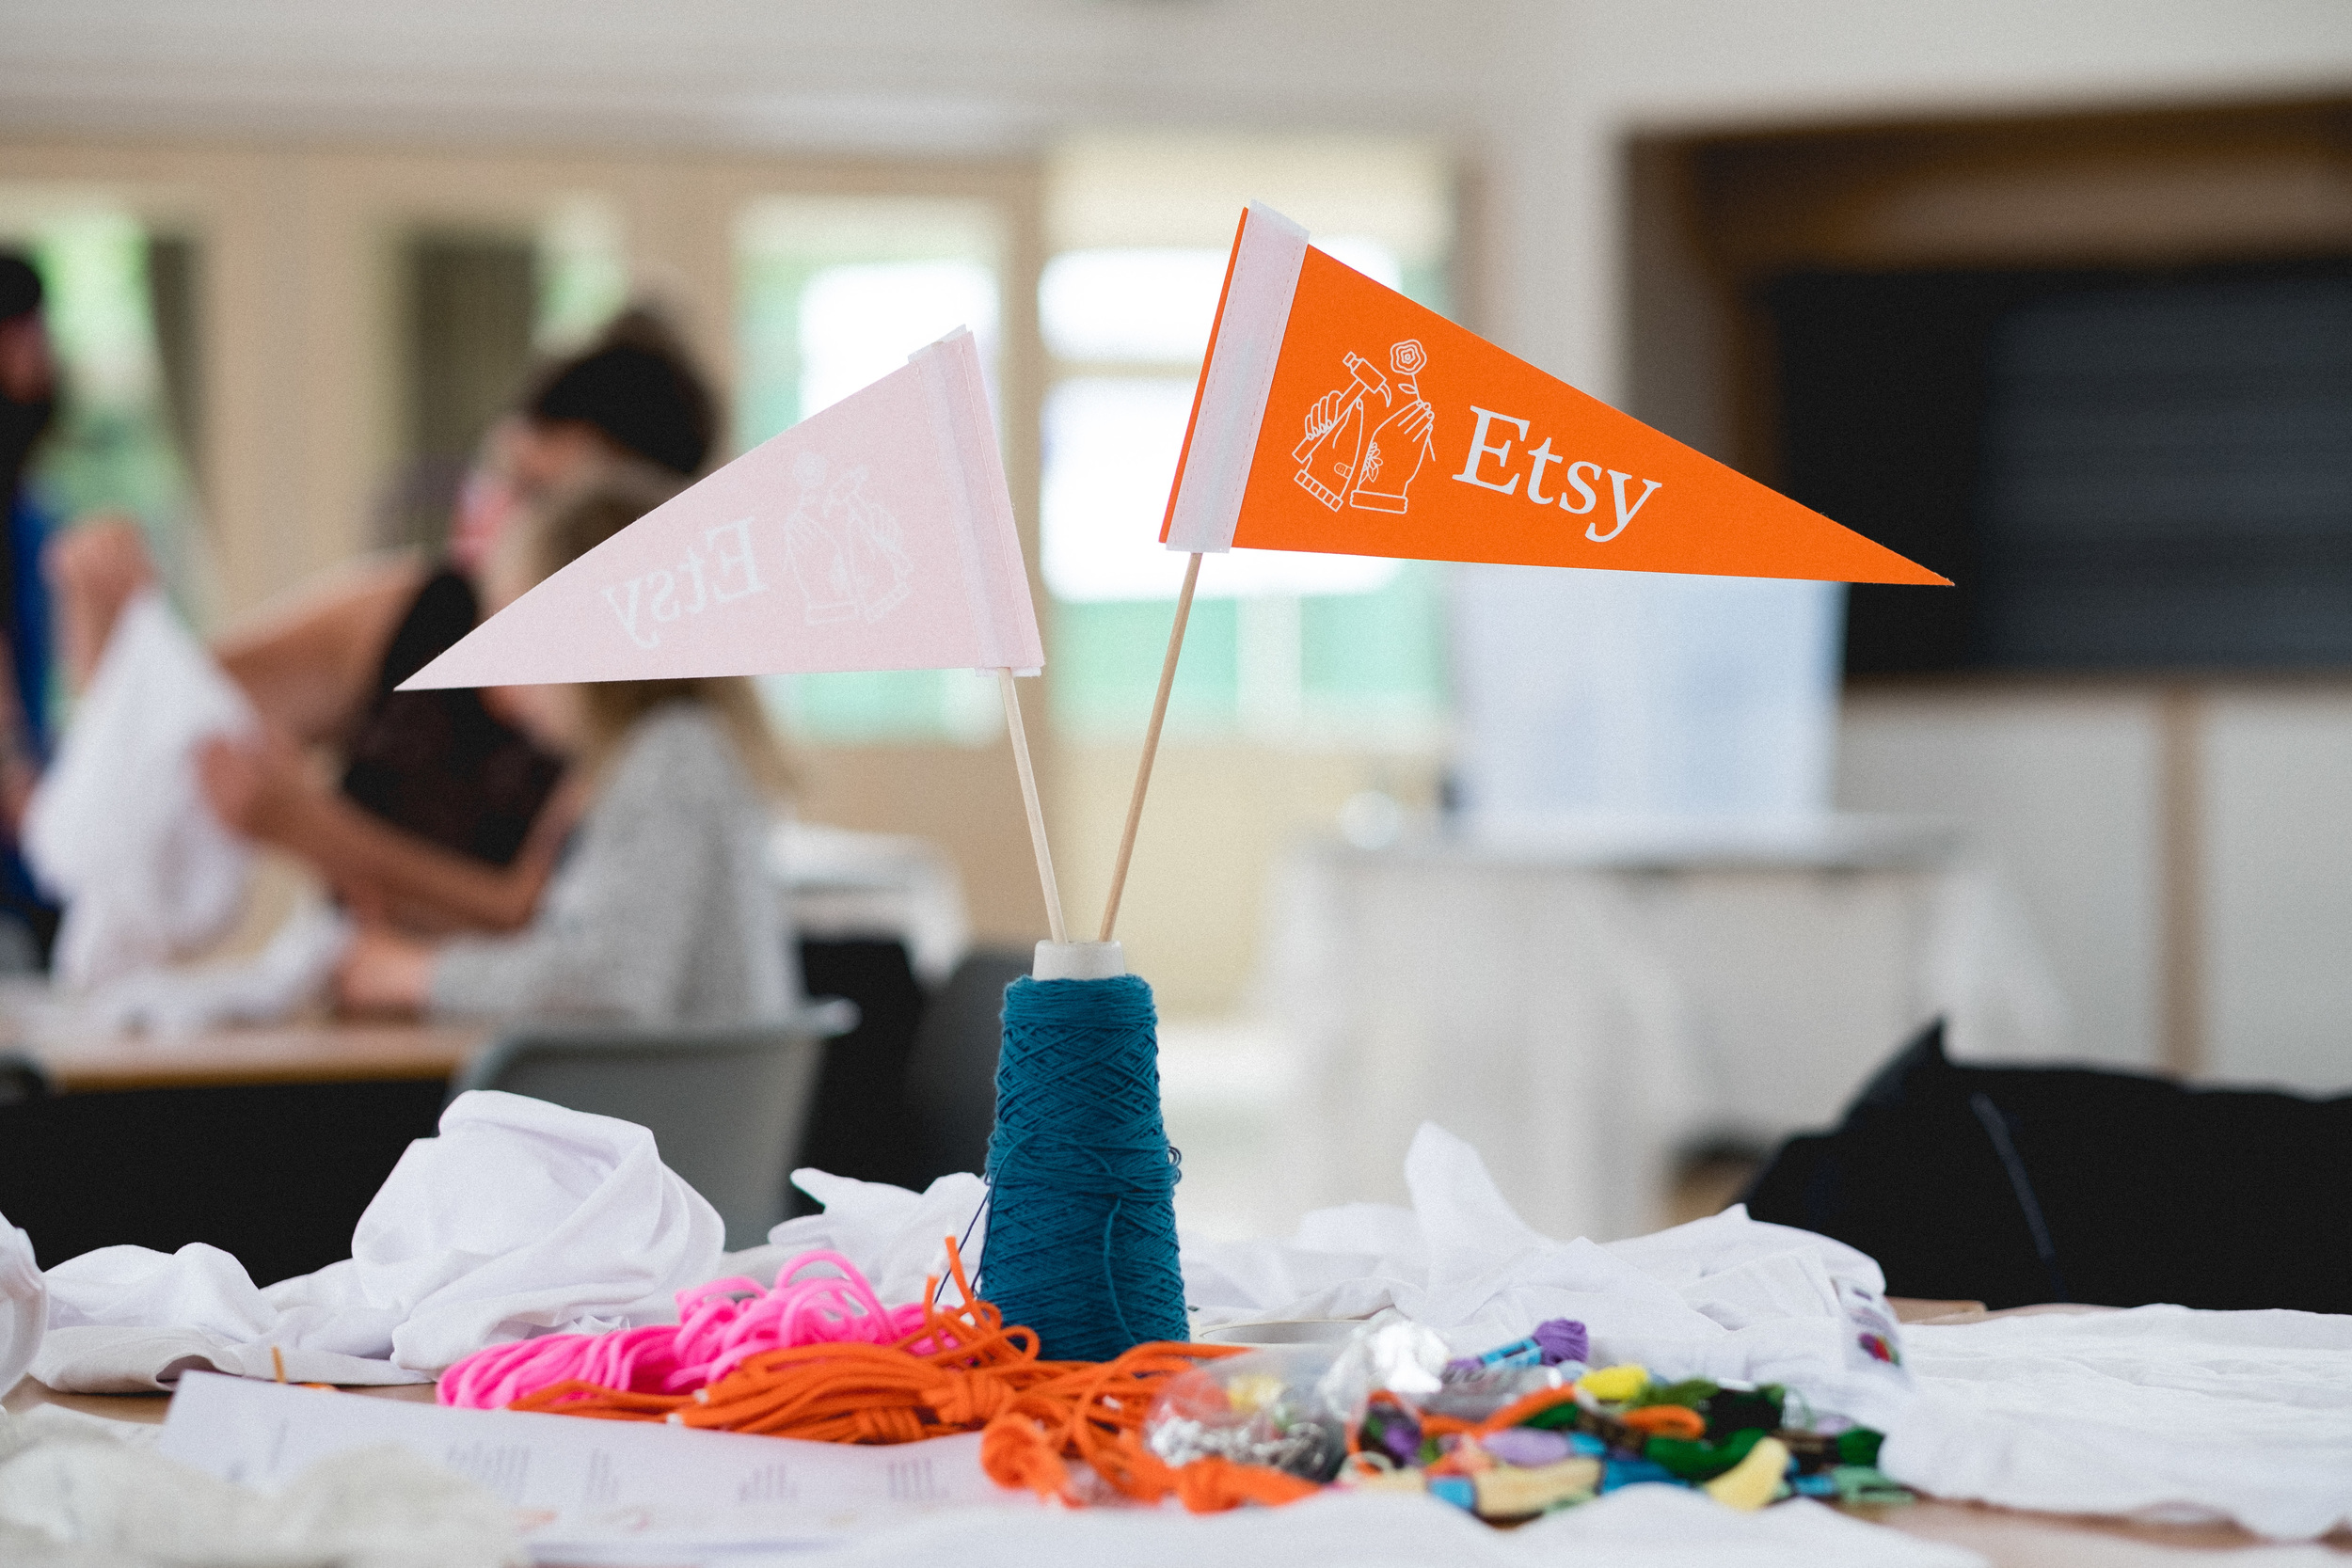 1ef5c7bd844a Last month saw the Nottingham Etsy team's busiest meet up as we hosted a  tie-dye event for the annual Etsy Craft Party!